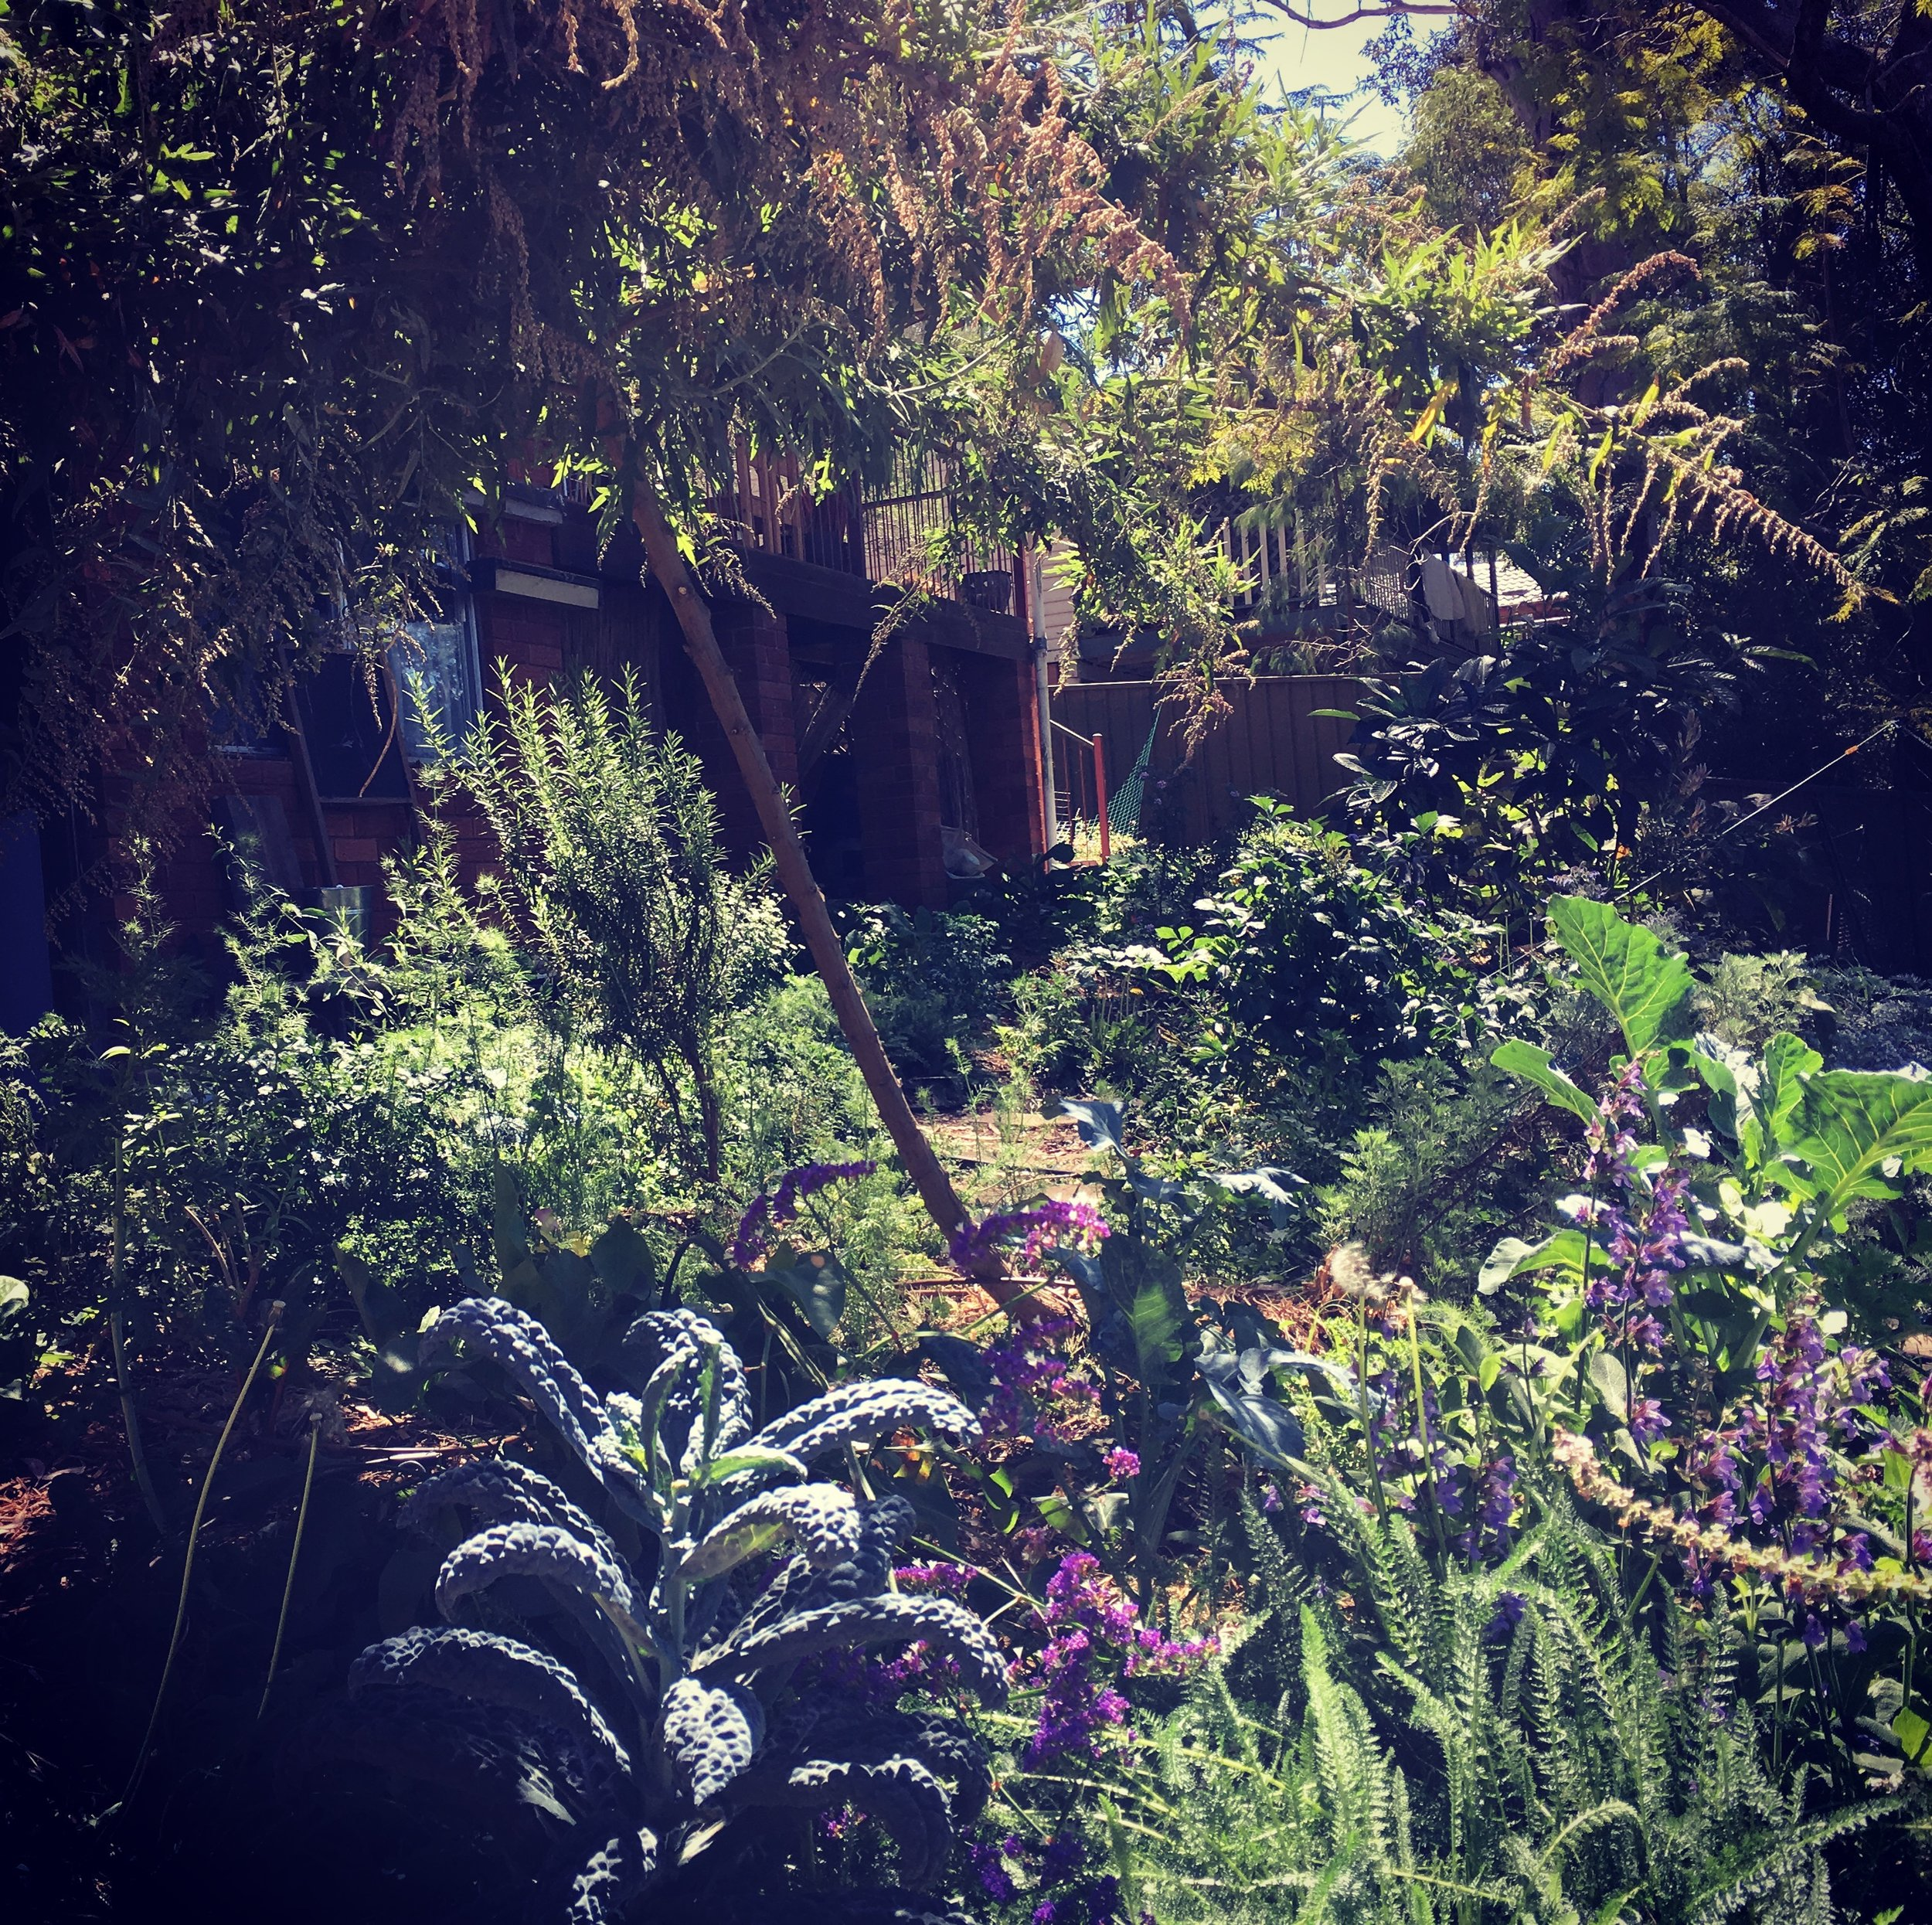 Yarrow Gardens: Manu's back yard in the Lower Blue Mountains. In this shot, you can see Tuscan kale, yarrow, mugwort, rosemary, chamomile, dandelion, statice, broccoli, nigella, french sorrel, valerian, loquat tree, dwarf avocado, carrot and sweet potato.